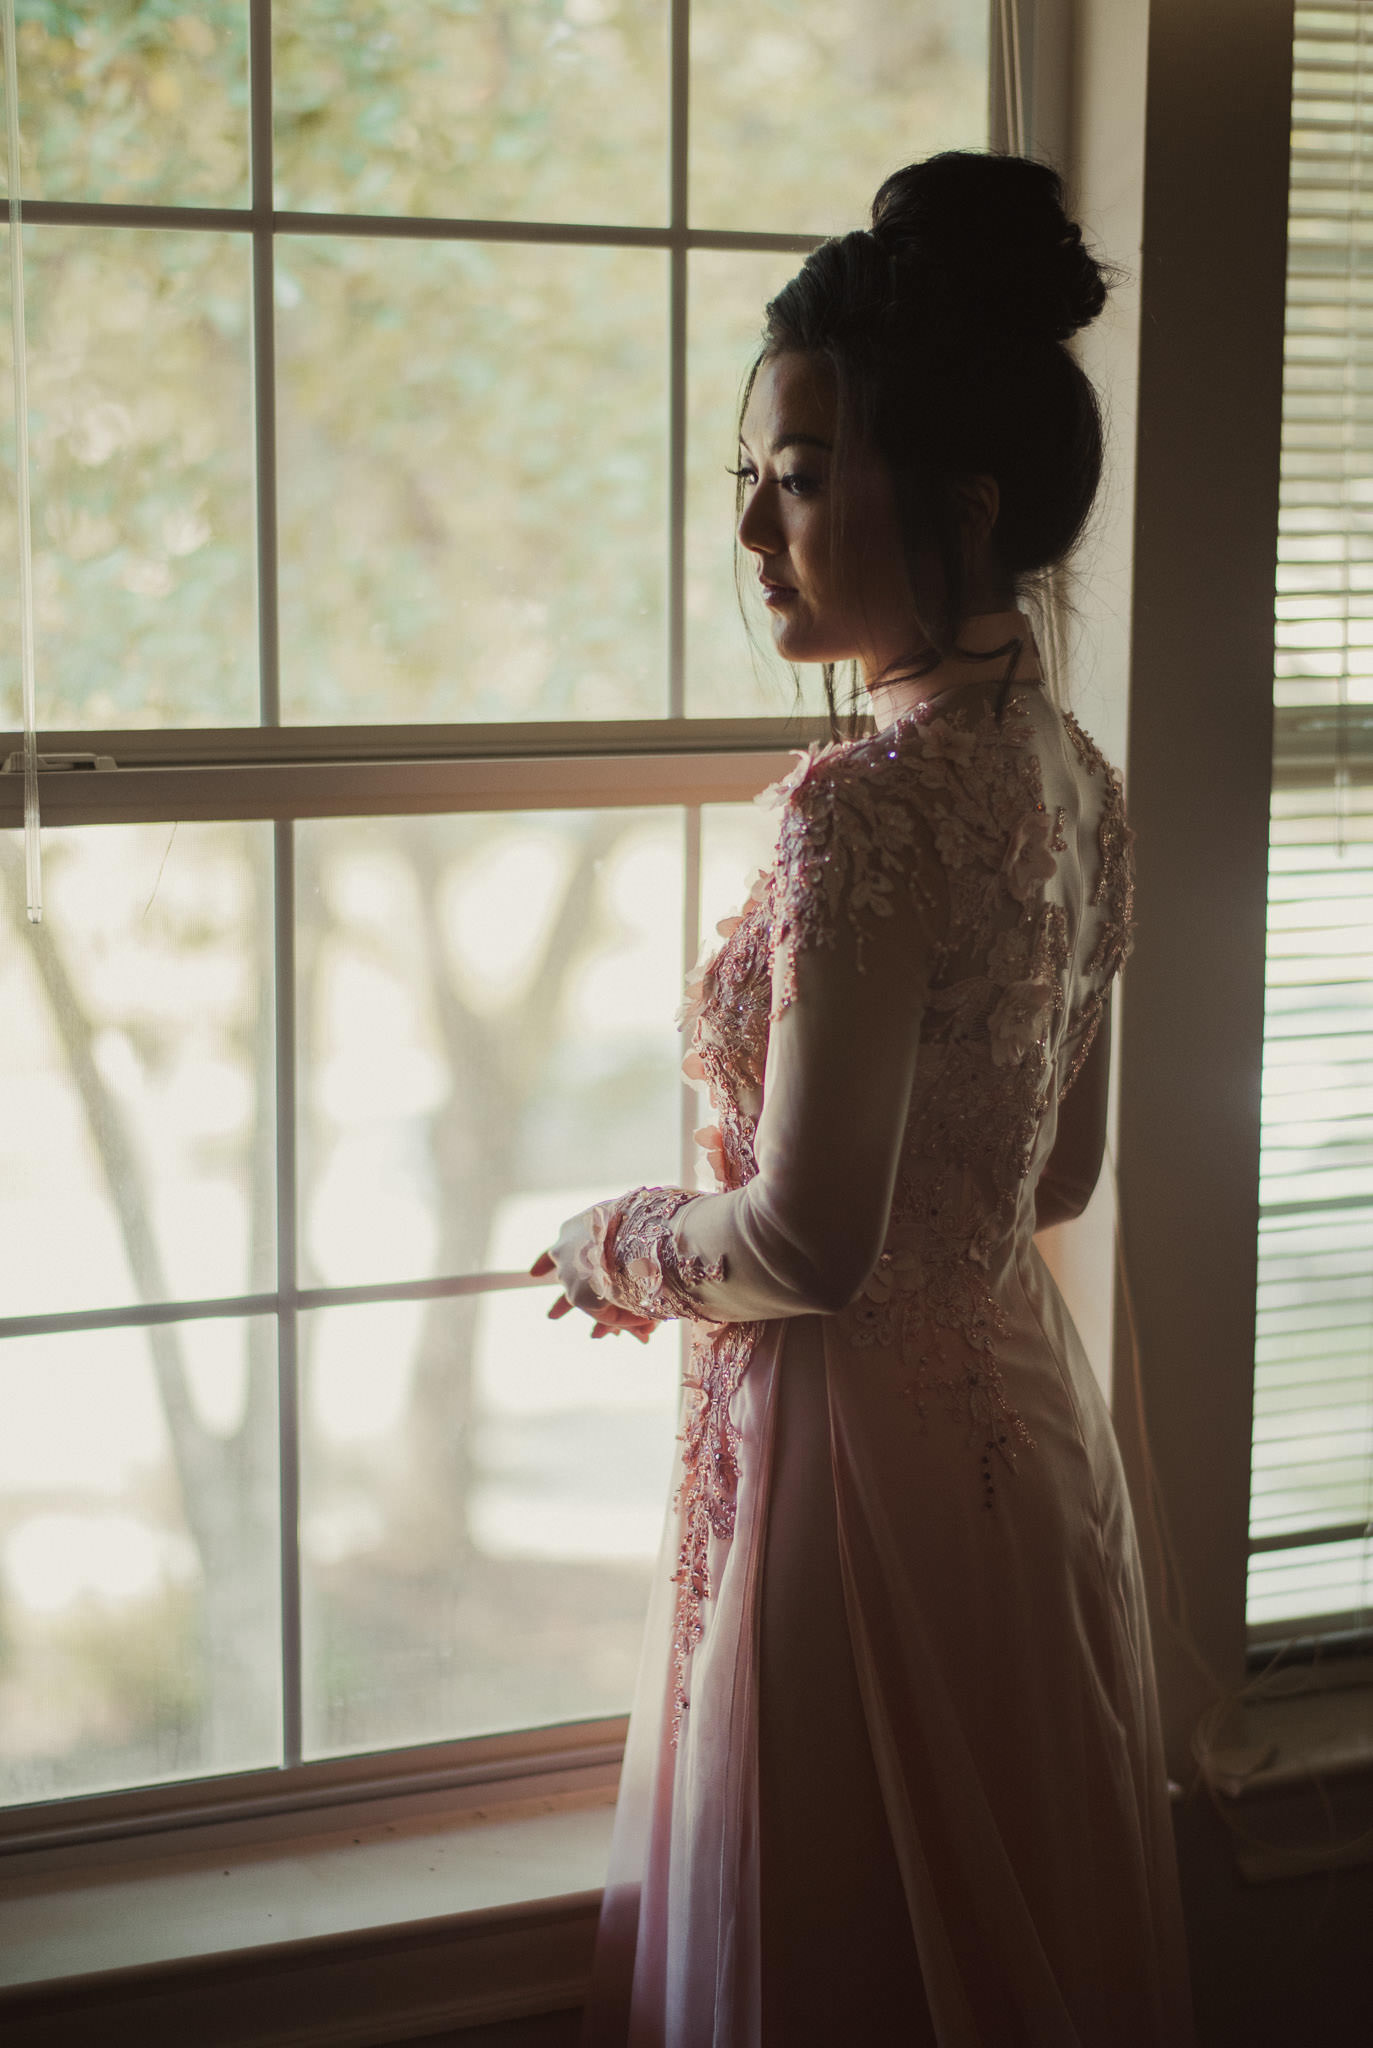 kim-michael-houston-vietnamese-tea-ceremony-engagement-downtown-boulevard-oaks-photographer-12.jpg